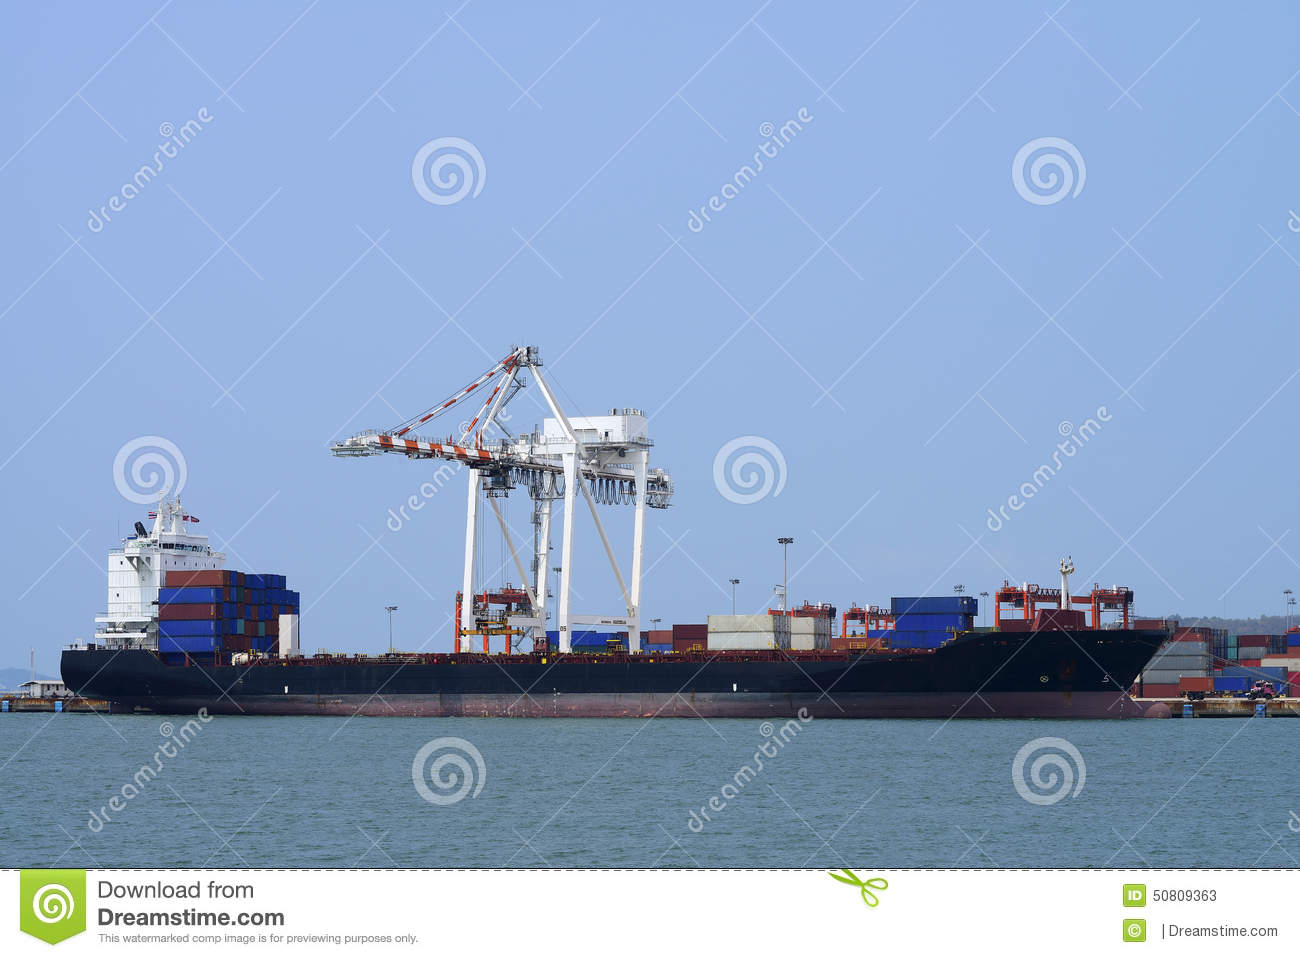 a description of containerization which means the use of containers in the transport of goods Containerization meaning containerization is a system of intermodal freight transport using intermodal containers goods would be loaded onto a.